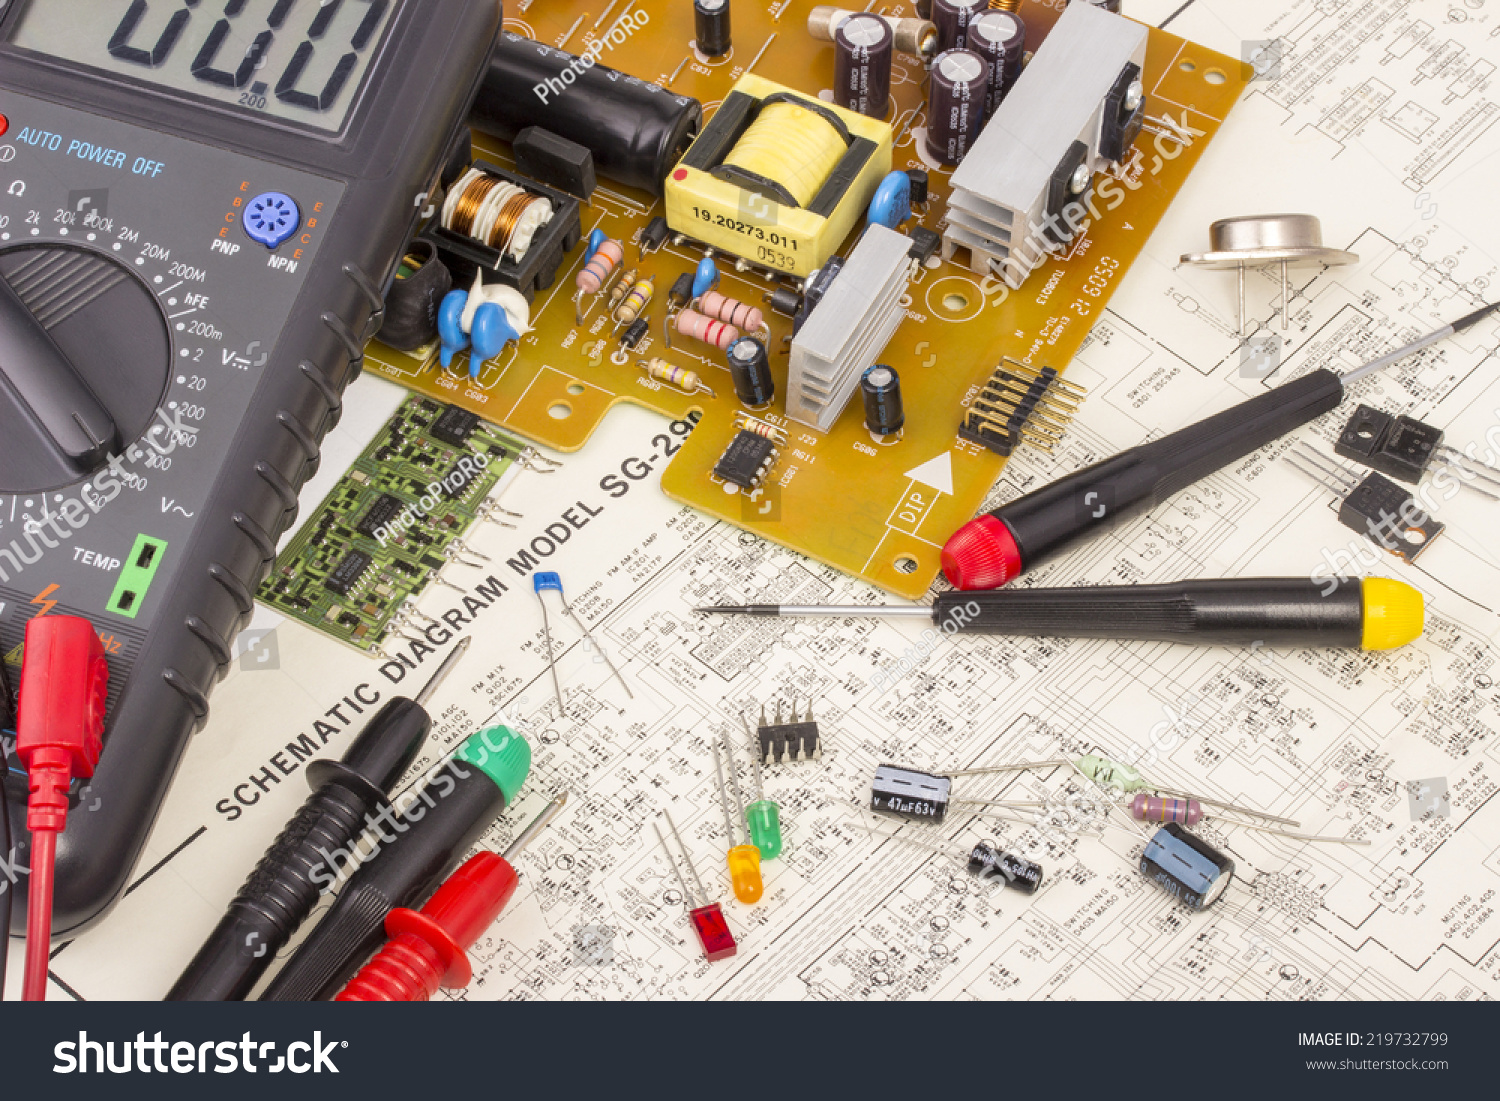 Harness Connector Repair Kit Free Download Wiring Diagram Schematic